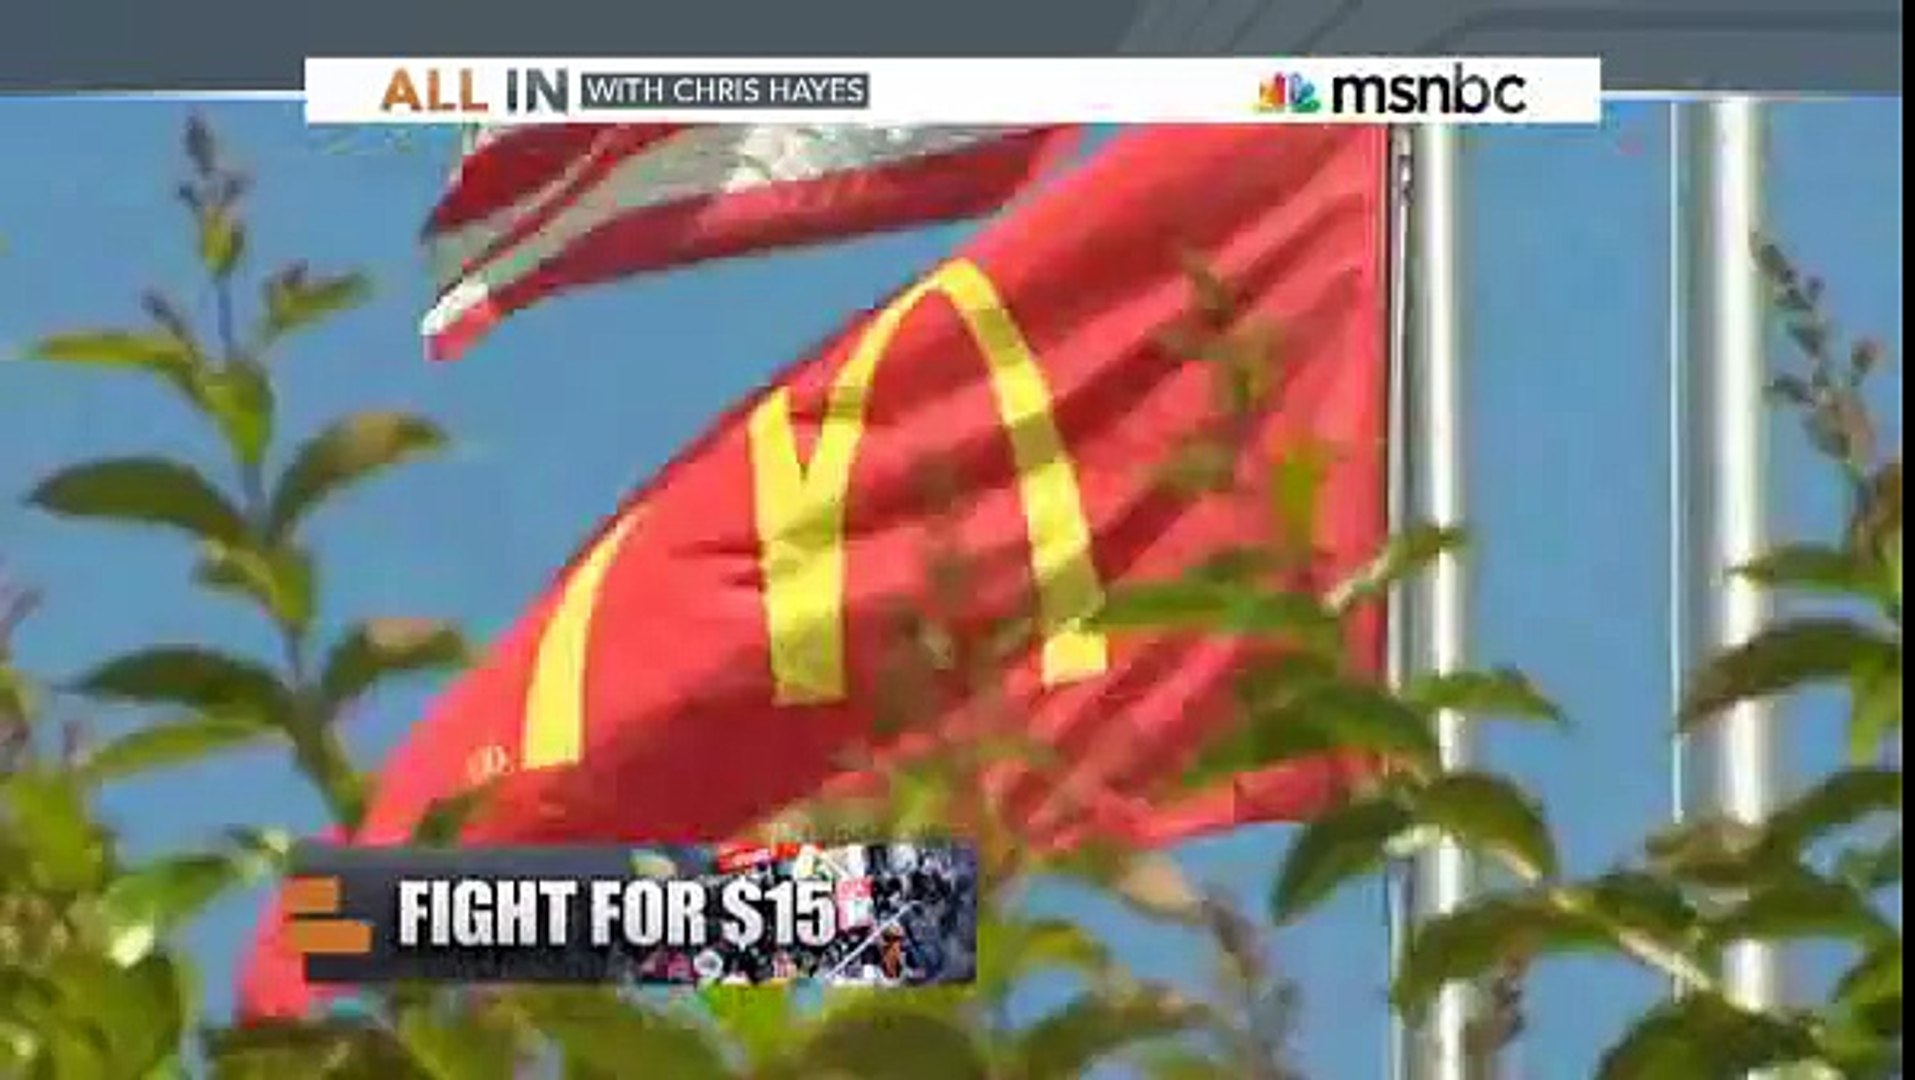 All In Ex McDonalds CEO battles Chris Hayes over minimum wage